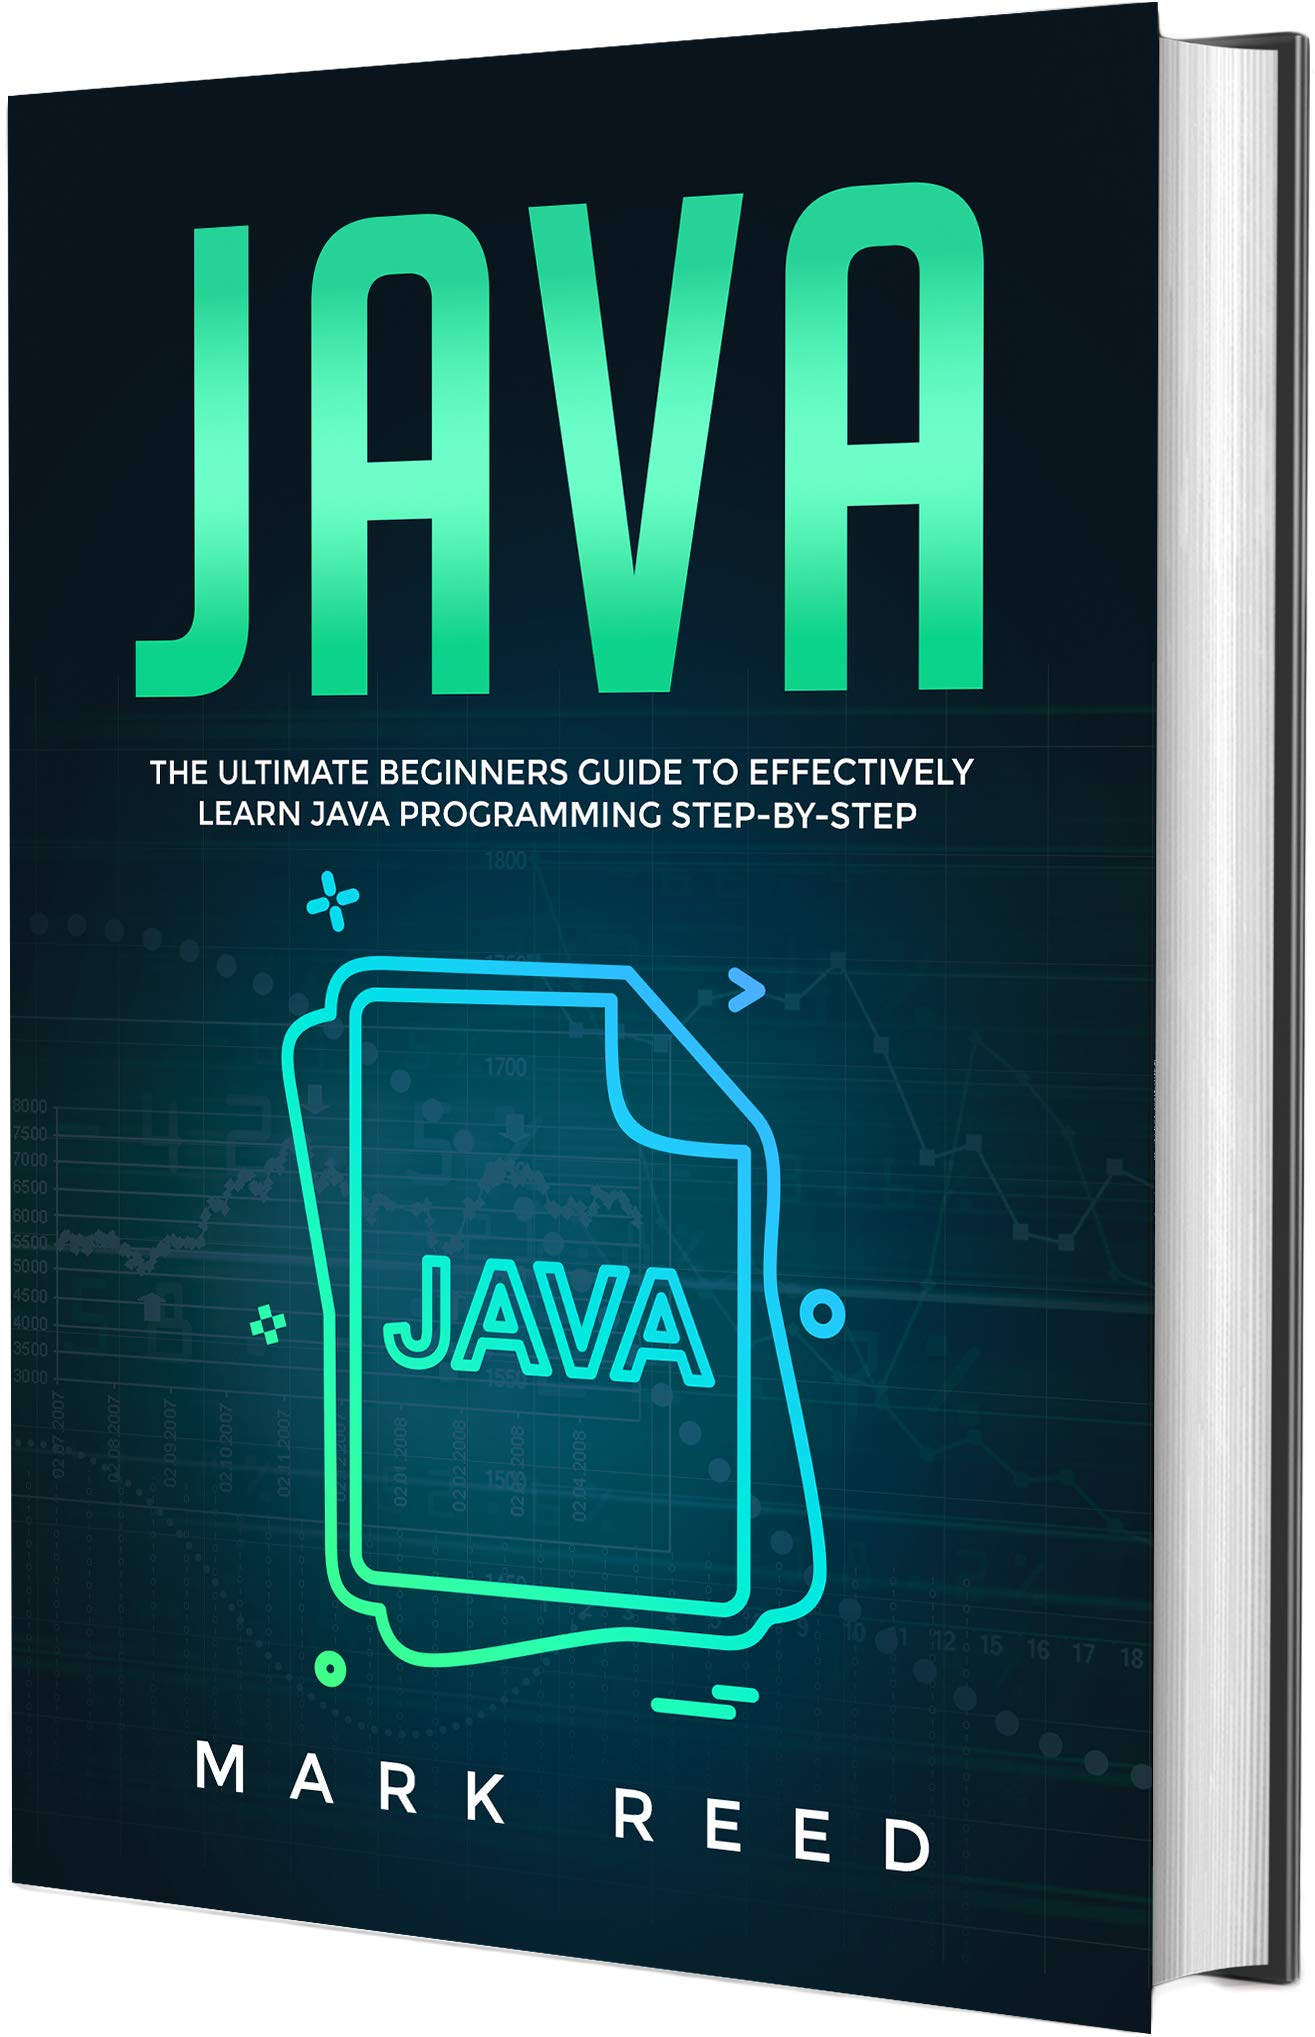 Java  The Ultimate Beginners Guide to Effectively Learn Java Programming Step-by-Step